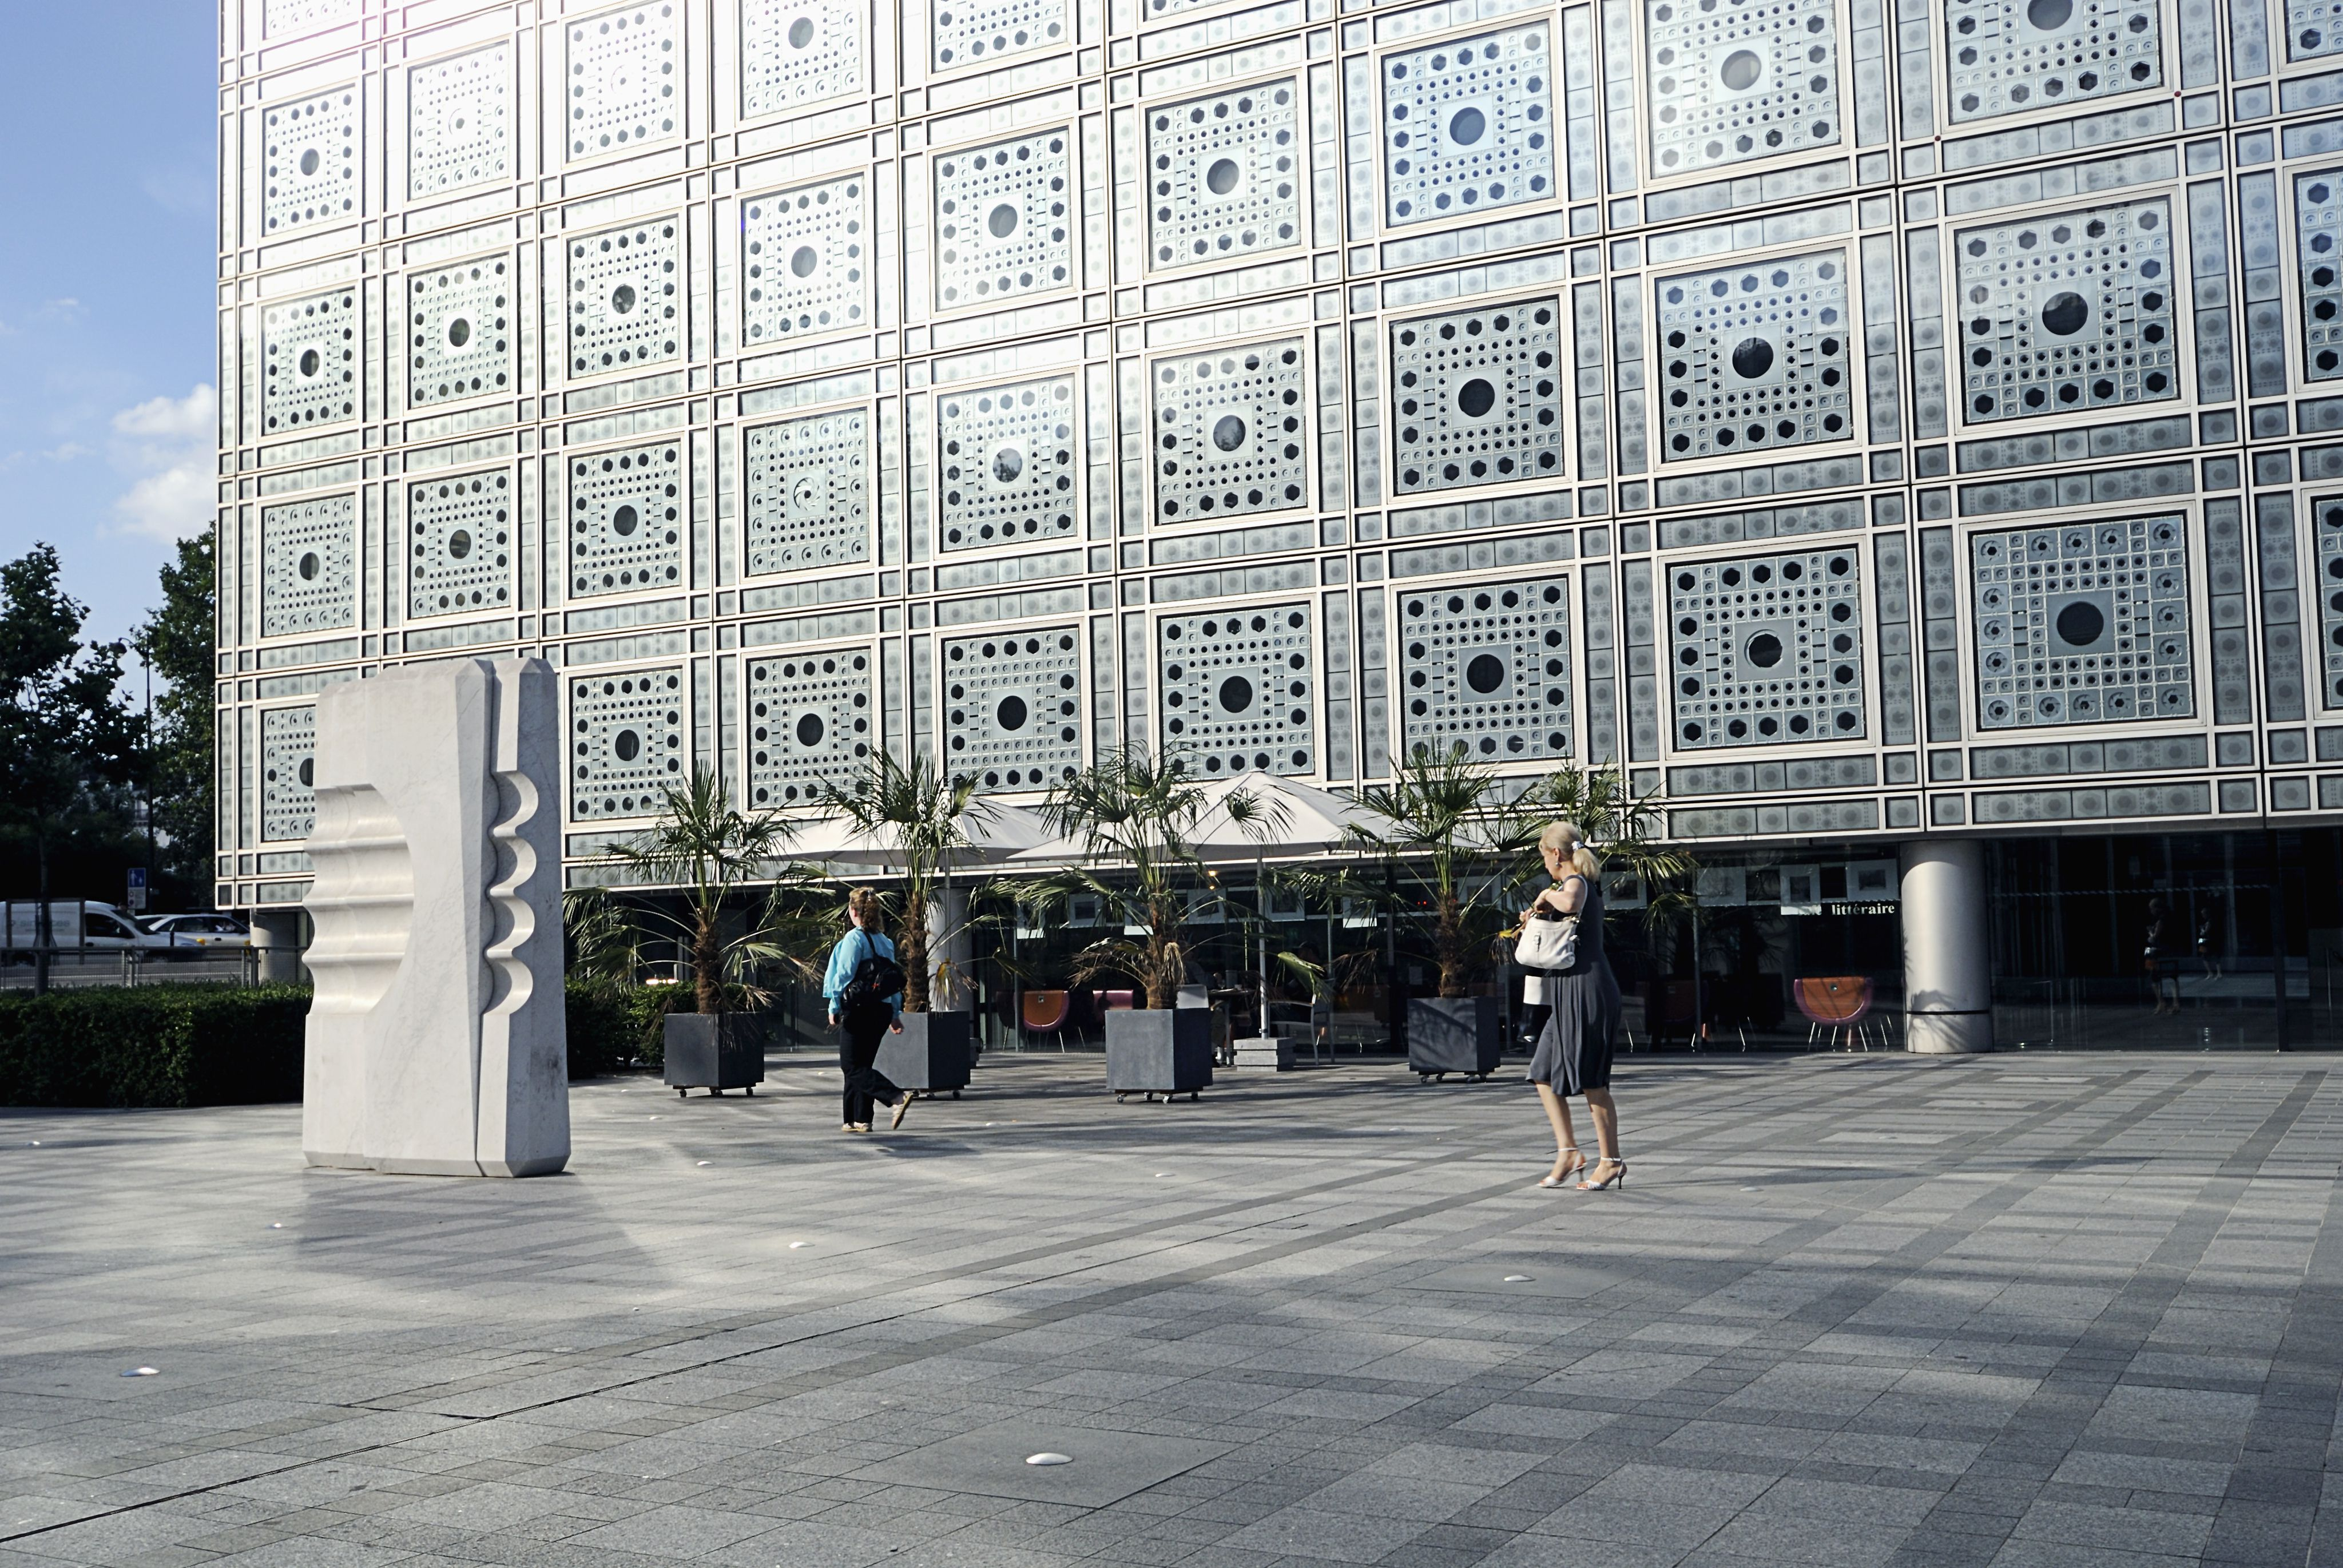 The Institut du Monde Arabe is one of Paris' loveliest buildings, inspired by Middle Eastern design.